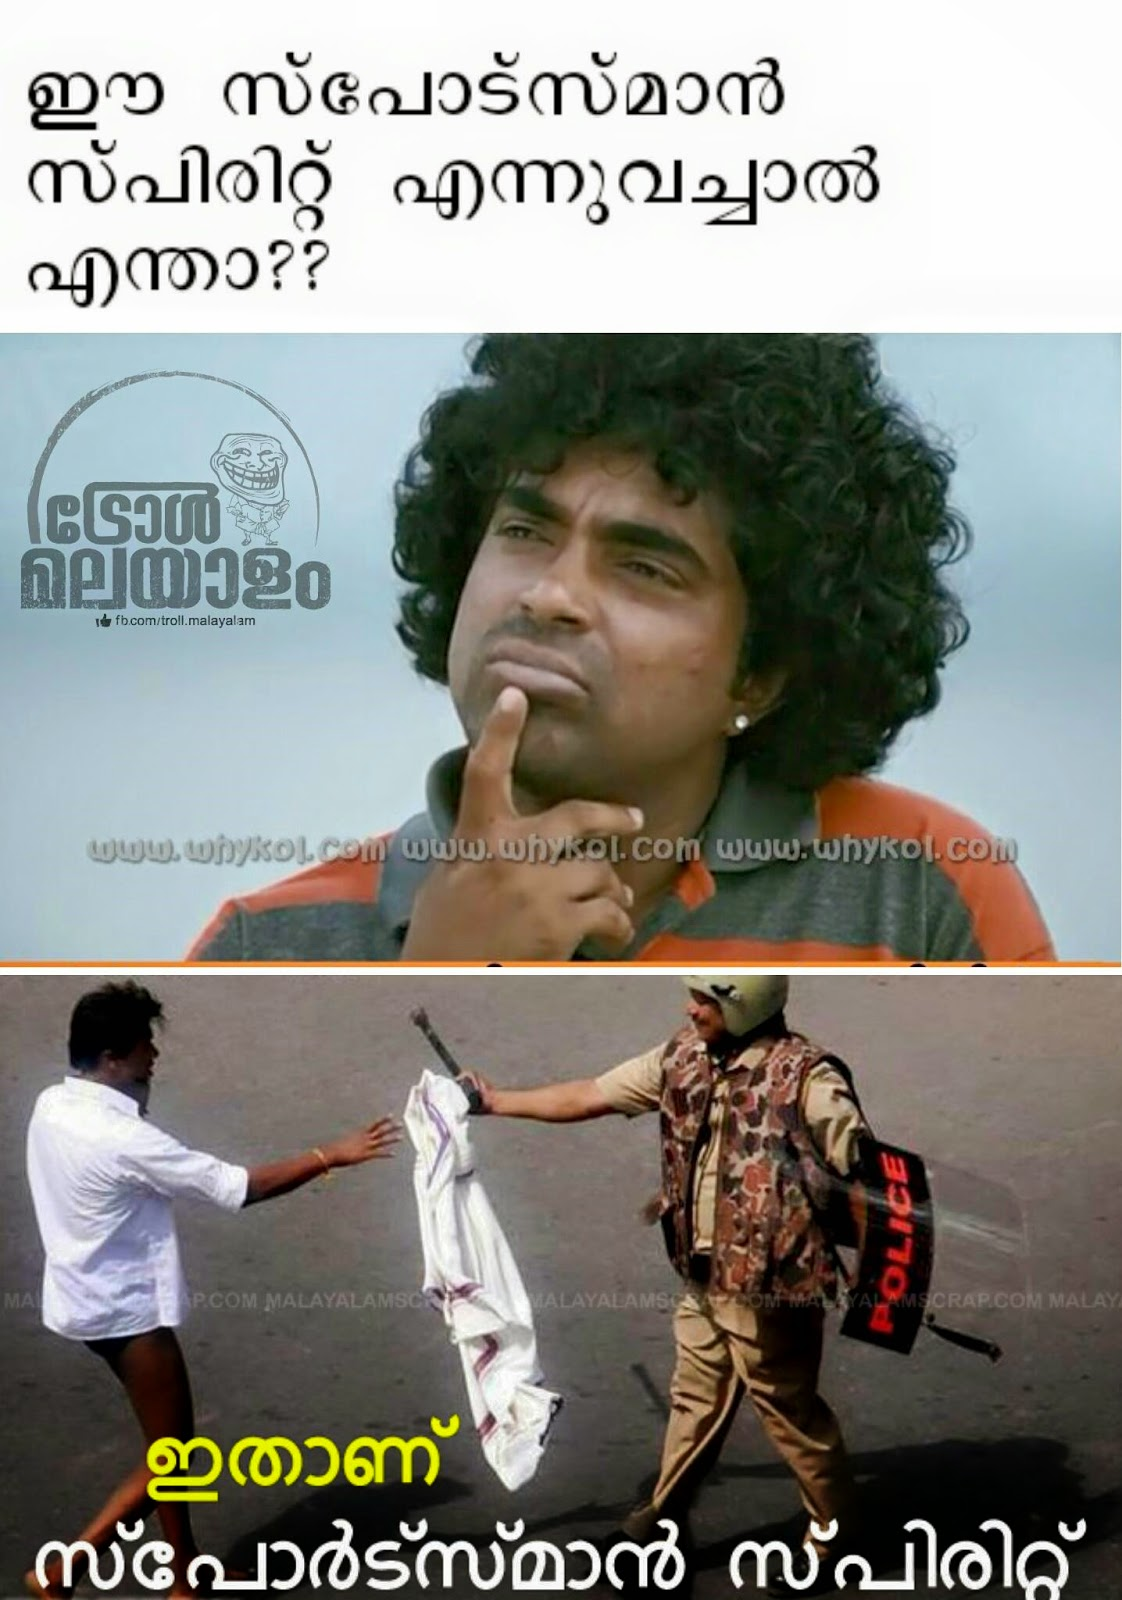 Sports Man Spirit Whatsapp Funny Forwards Exclusive Malayalam